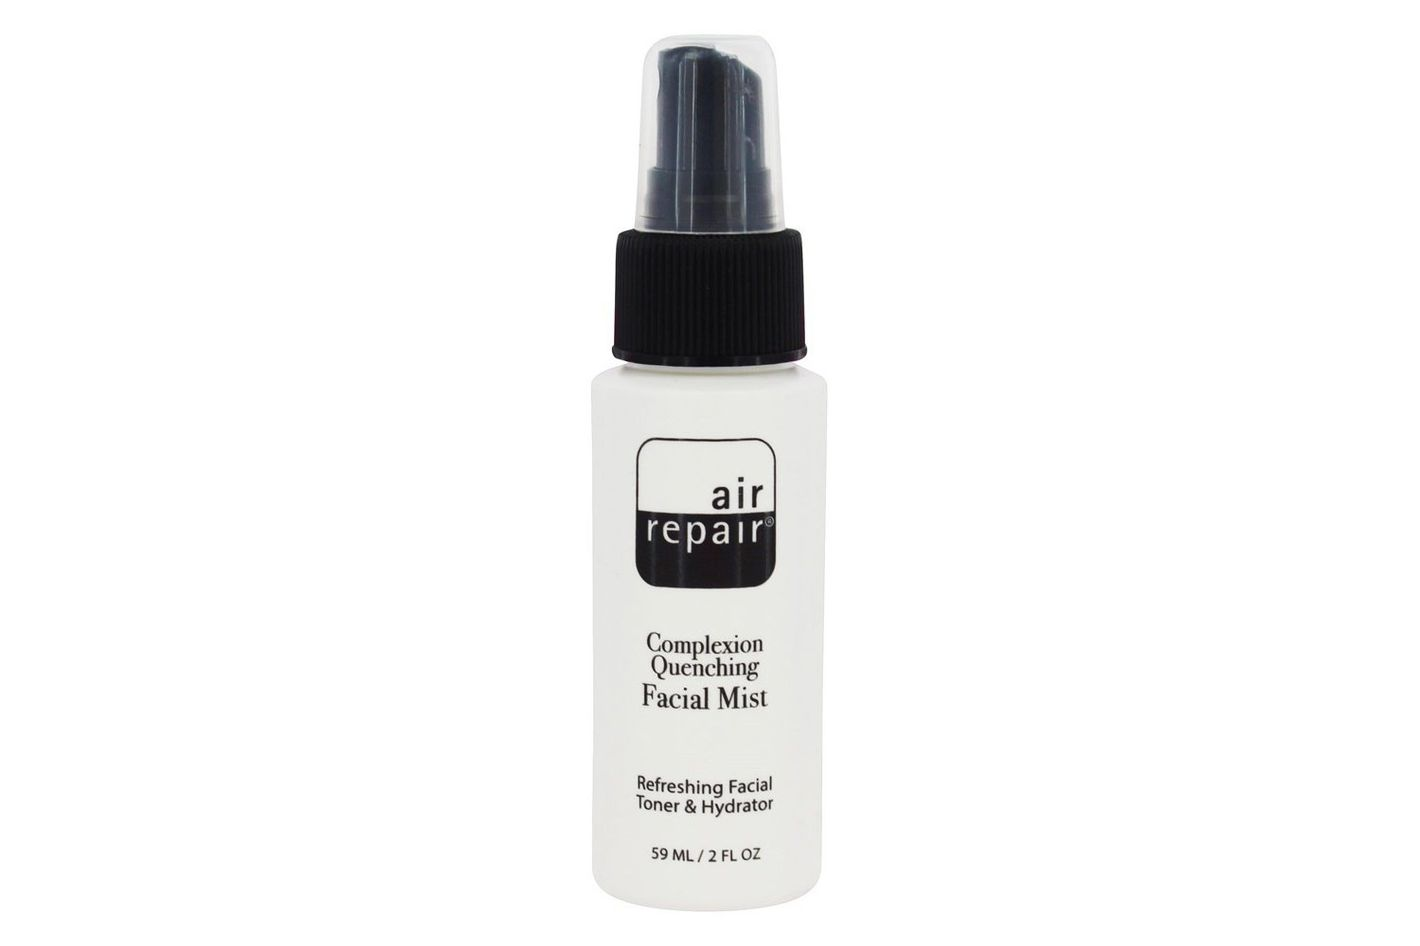 Air Repair Facial Mist